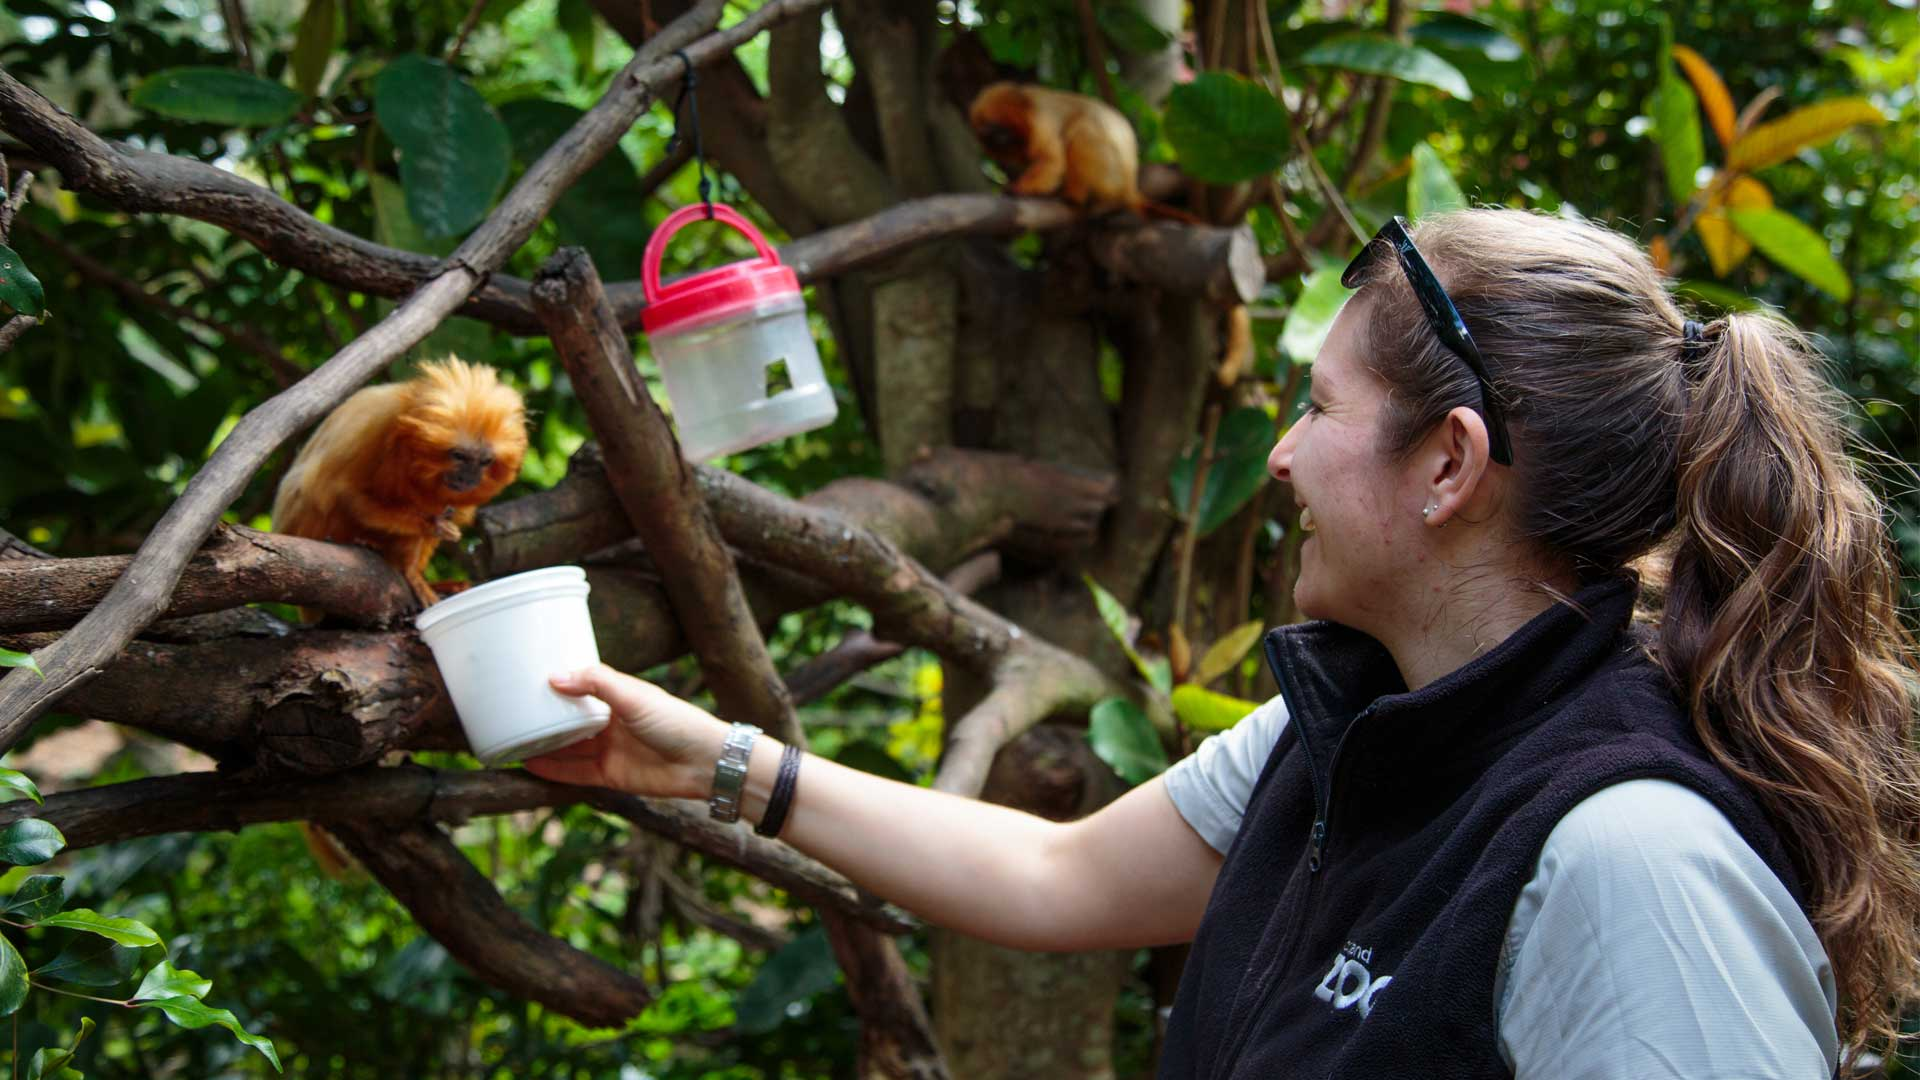 https://rfacdn.nz/zoo/assets/media/golden-lion-tamarin-gallery-5.jpg